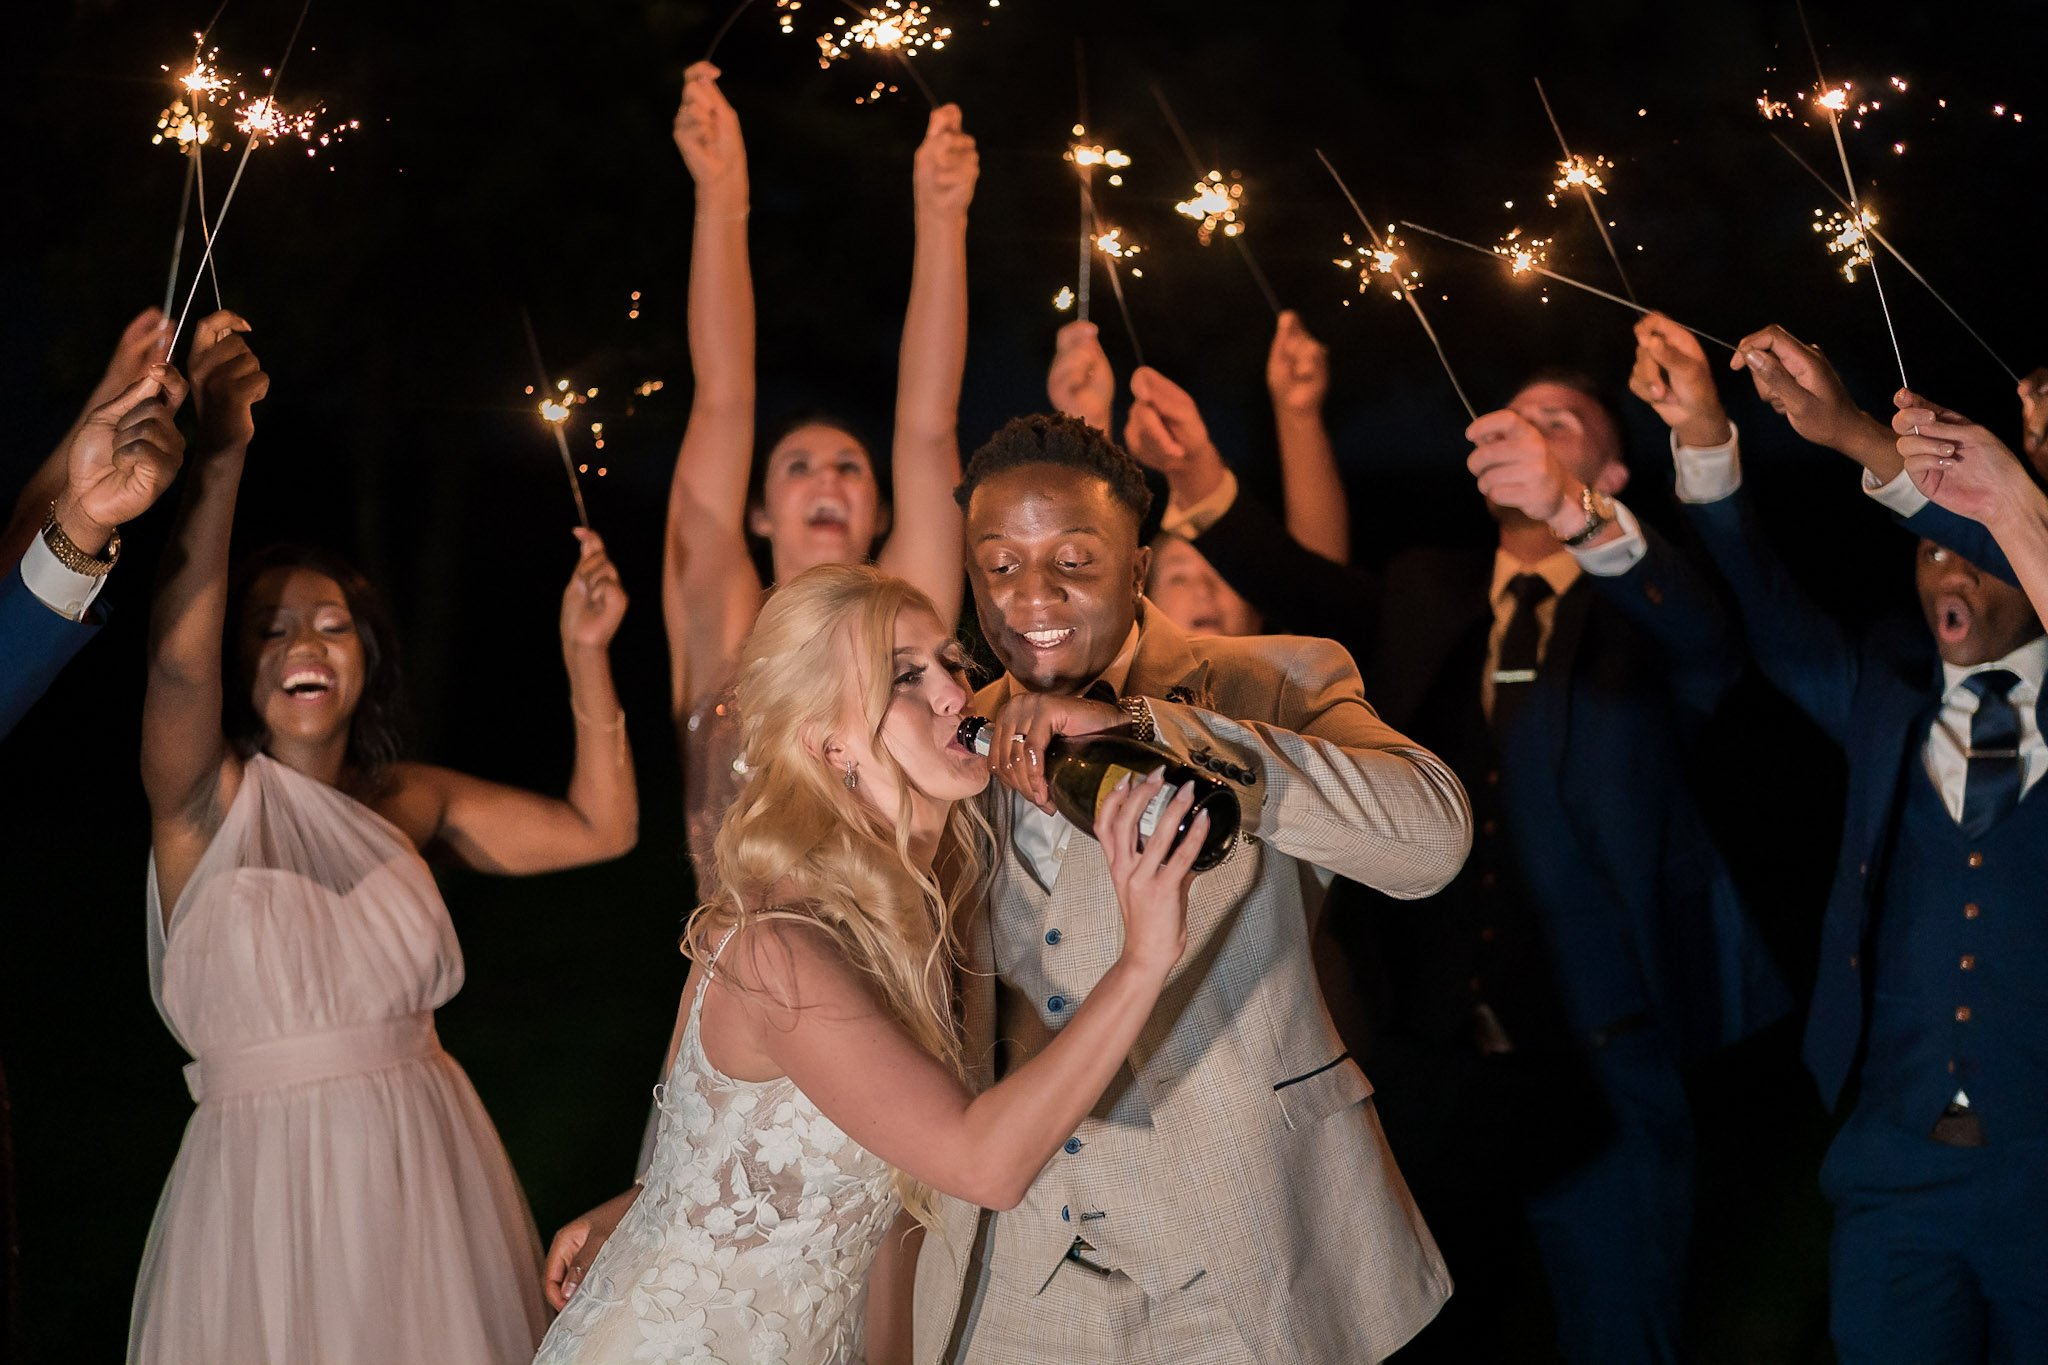 Your Favourite Frame YFFUK Mwasuku Norton Fields Atherstone bride drinking from the champagne bottle with her groom holding the bottle sparklers behind and above them